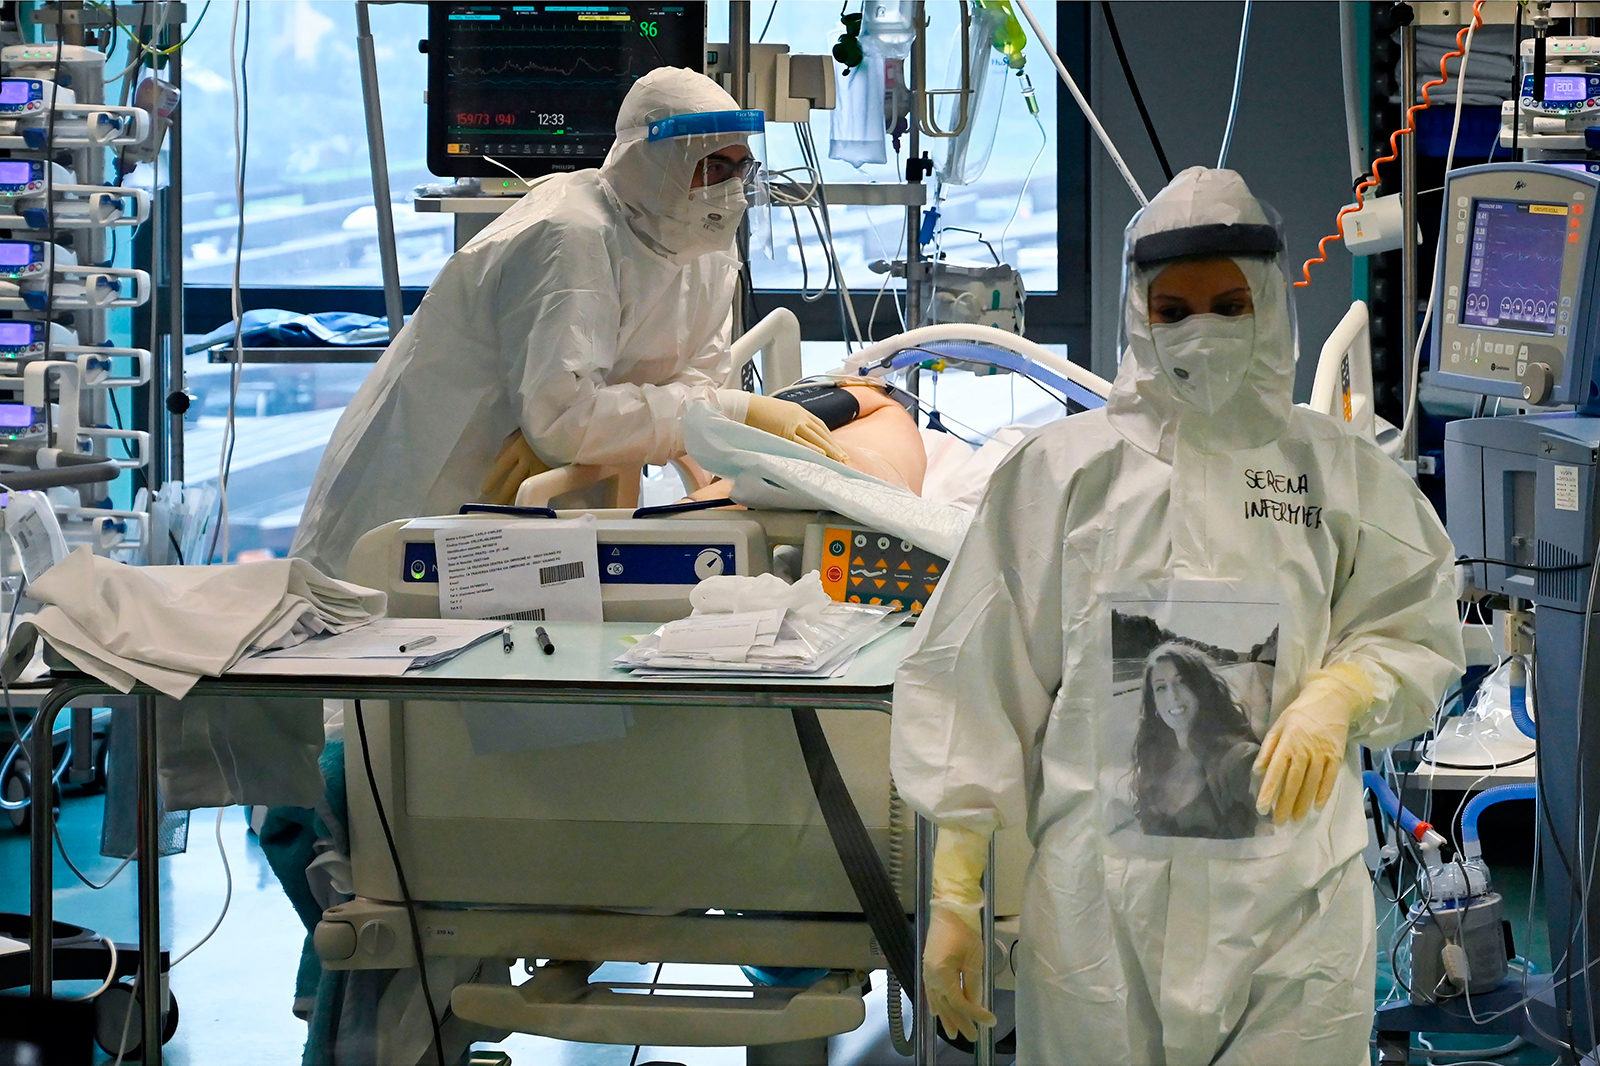 Medical workers of the Covid-19 intensive care unit at the Santo Stefano hospital in Prato, near Florence, tending to a patient on December 17.